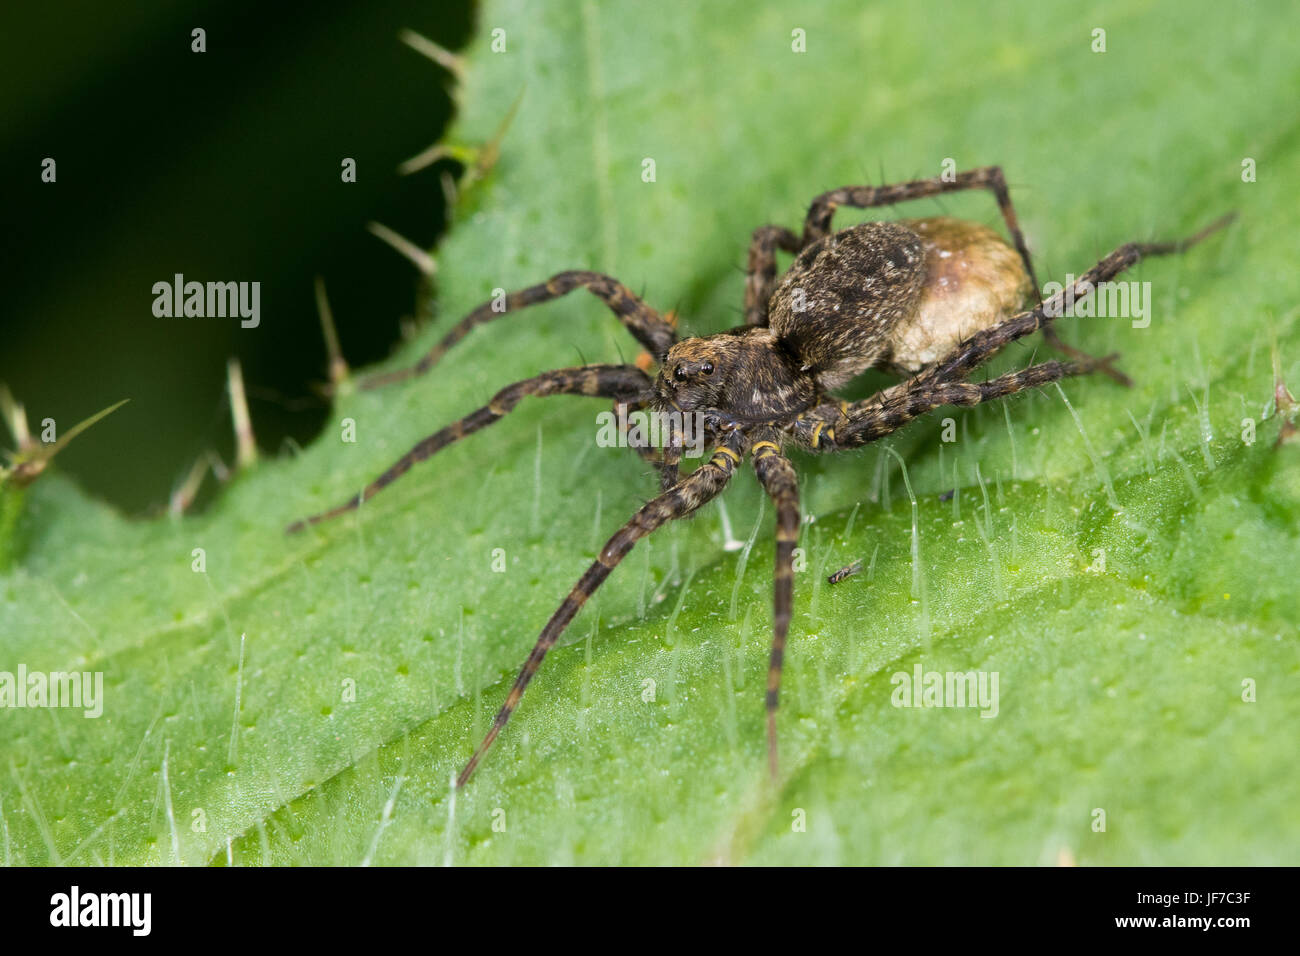 female Narrow-legged Wolf Spider (either Pardosa monticola or P. palustris) carrying an eggsac - Stock Image